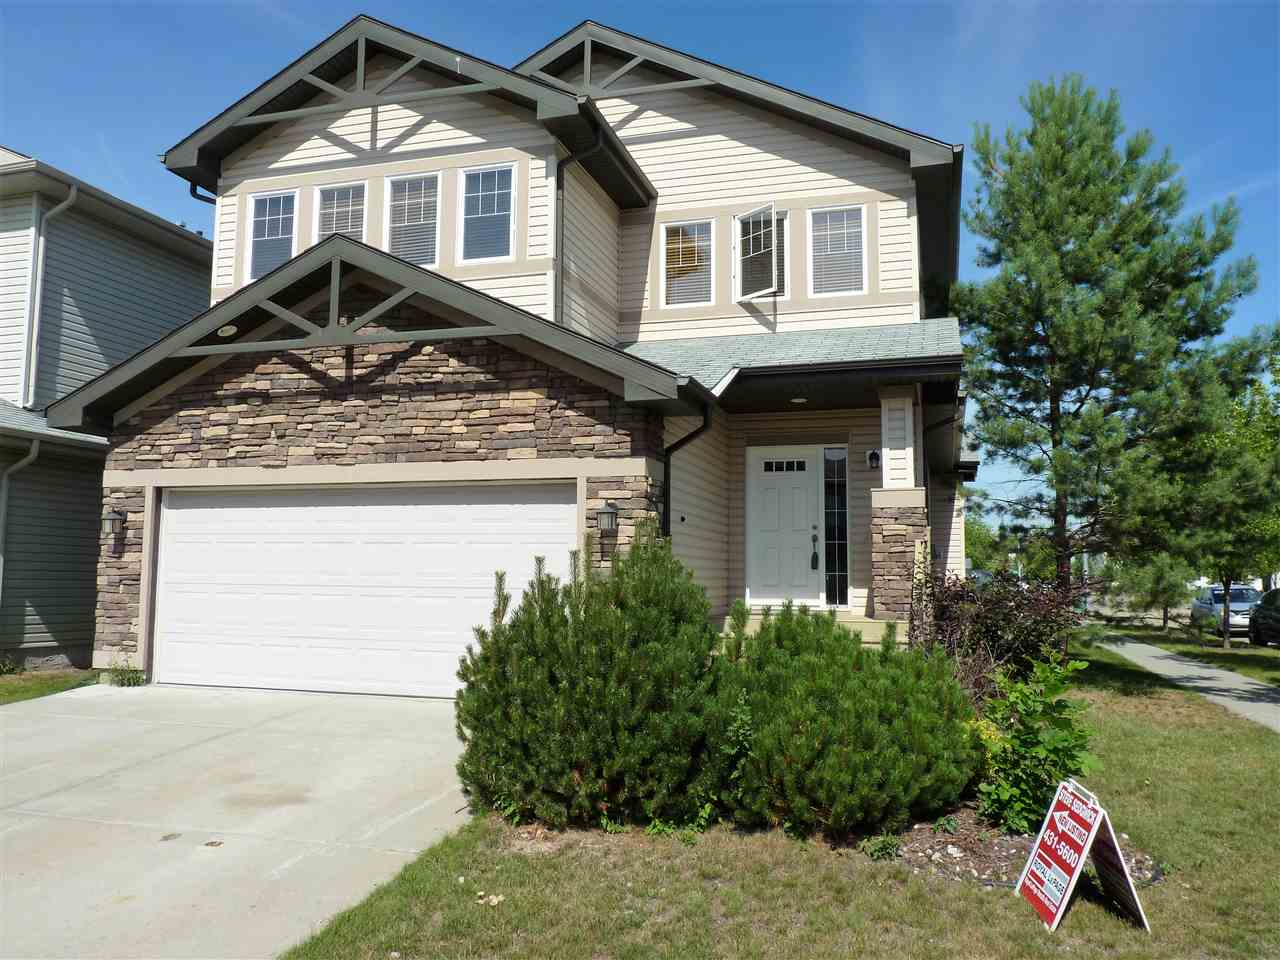 Check out the amazing value in this former show-home with built-ins galore PLUS a fully finished basement! You know it was finished well to demonstrate the builder's quality of workmanship. An open flowing floor plan makes this home feel even larger than the 2150 sq ft it shows on paper. With 3+1 bedrooms, den, and 2.5 baths (plus a basement full bath rough-in) there is room for everyone in the family to have their own space. The master bedroom features a luxurious ensuite (corner bath and HUGE shower) with a generous walk-in closet making it the perfect private retreat. Copious counter & cabinet space are complemented by the walk-through pantry which accesses the garage entry mudroom and main floor laundry. The eating bar style island and a dedicated dining area will serve all your food serving needs.  The newly refinished deck is right off the dining area & has a natural gas connection. A built-in whole home speaker system, central air conditioning, plus a gas fireplace round out this package nicely.